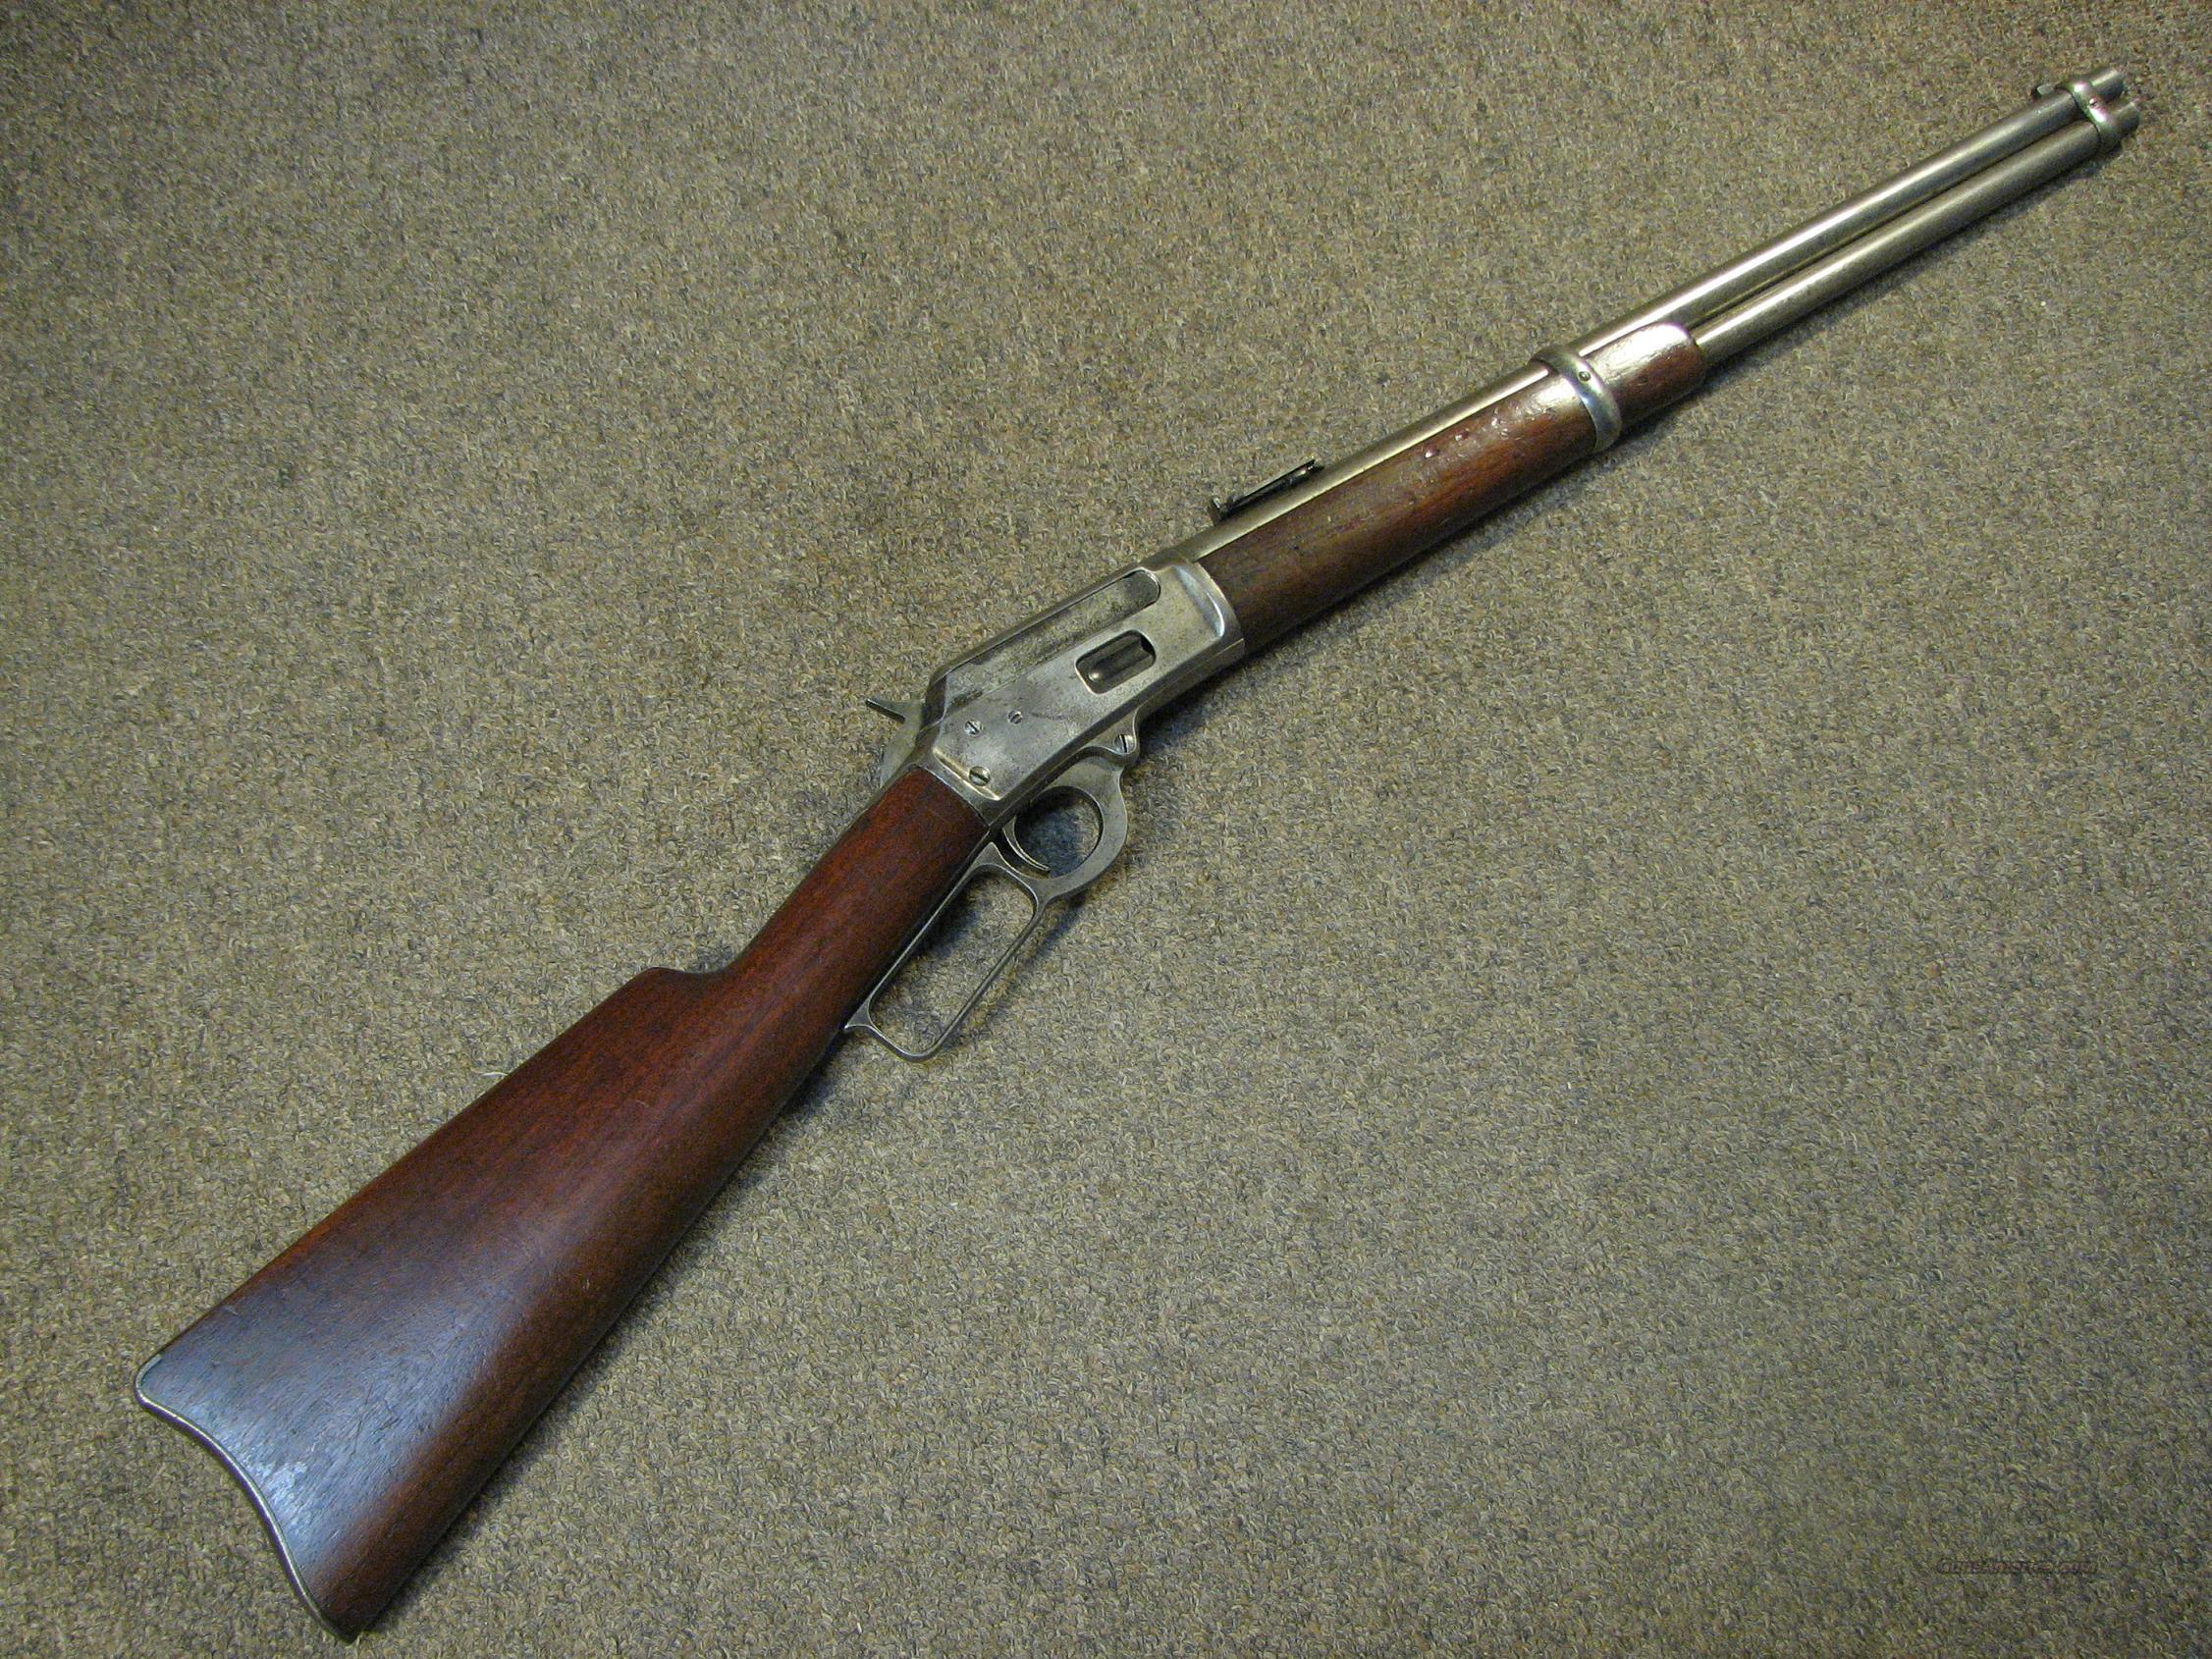 MARLIN 1894 SADDLE RING CARBINE .44-40 - MFG 1897  Guns > Rifles > Marlin Rifles > Pre-1899